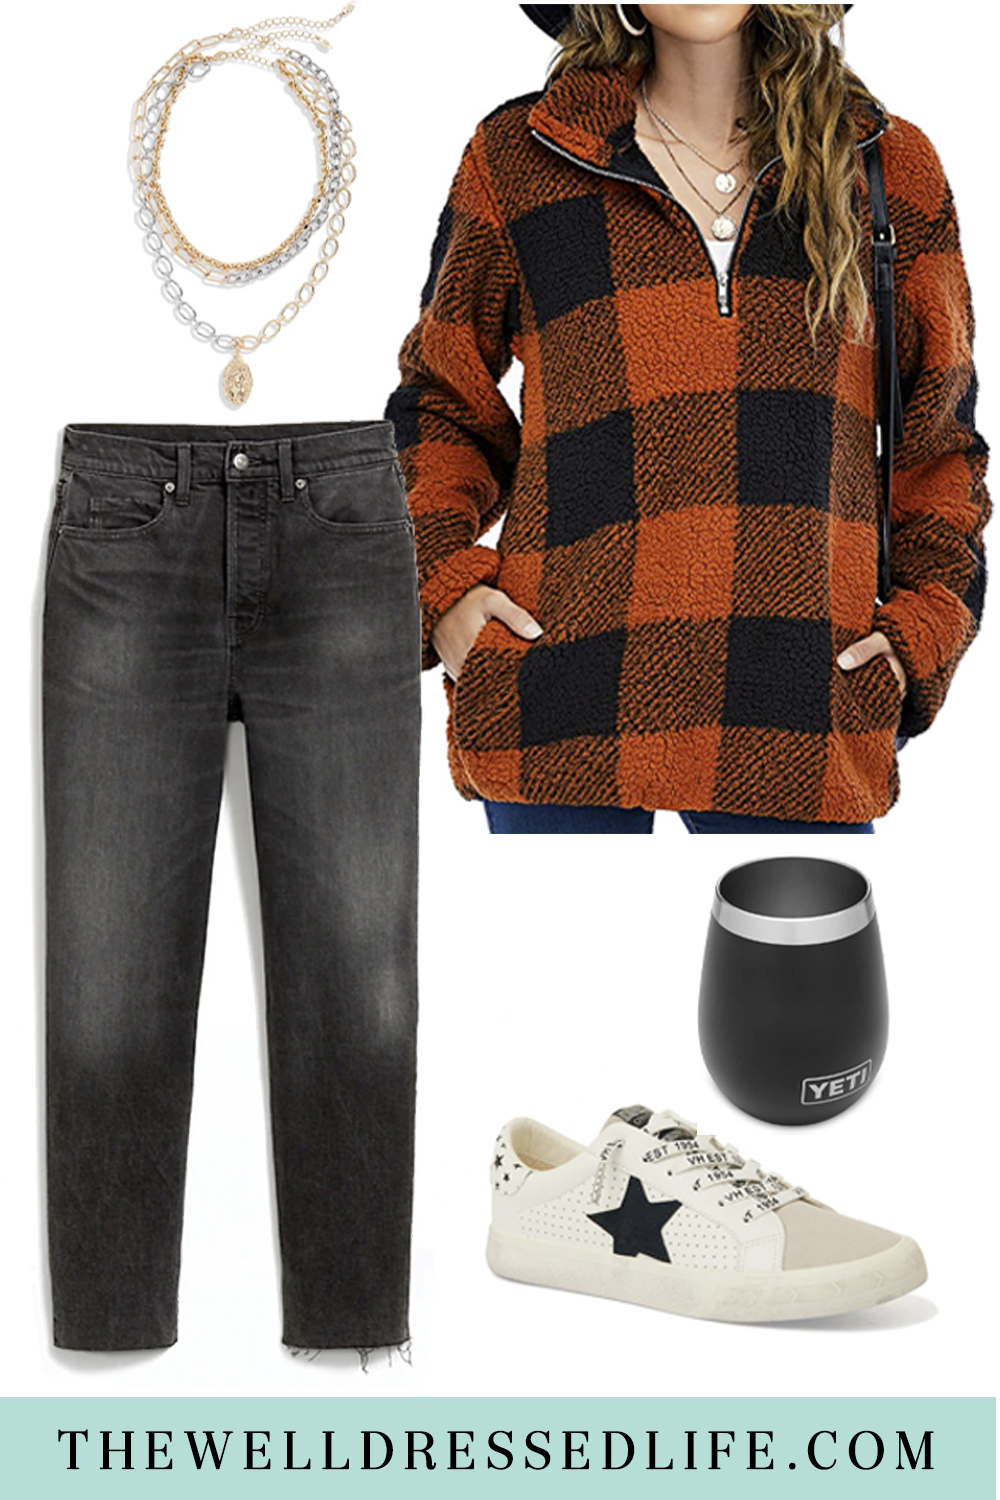 A Halloween Night Outfit